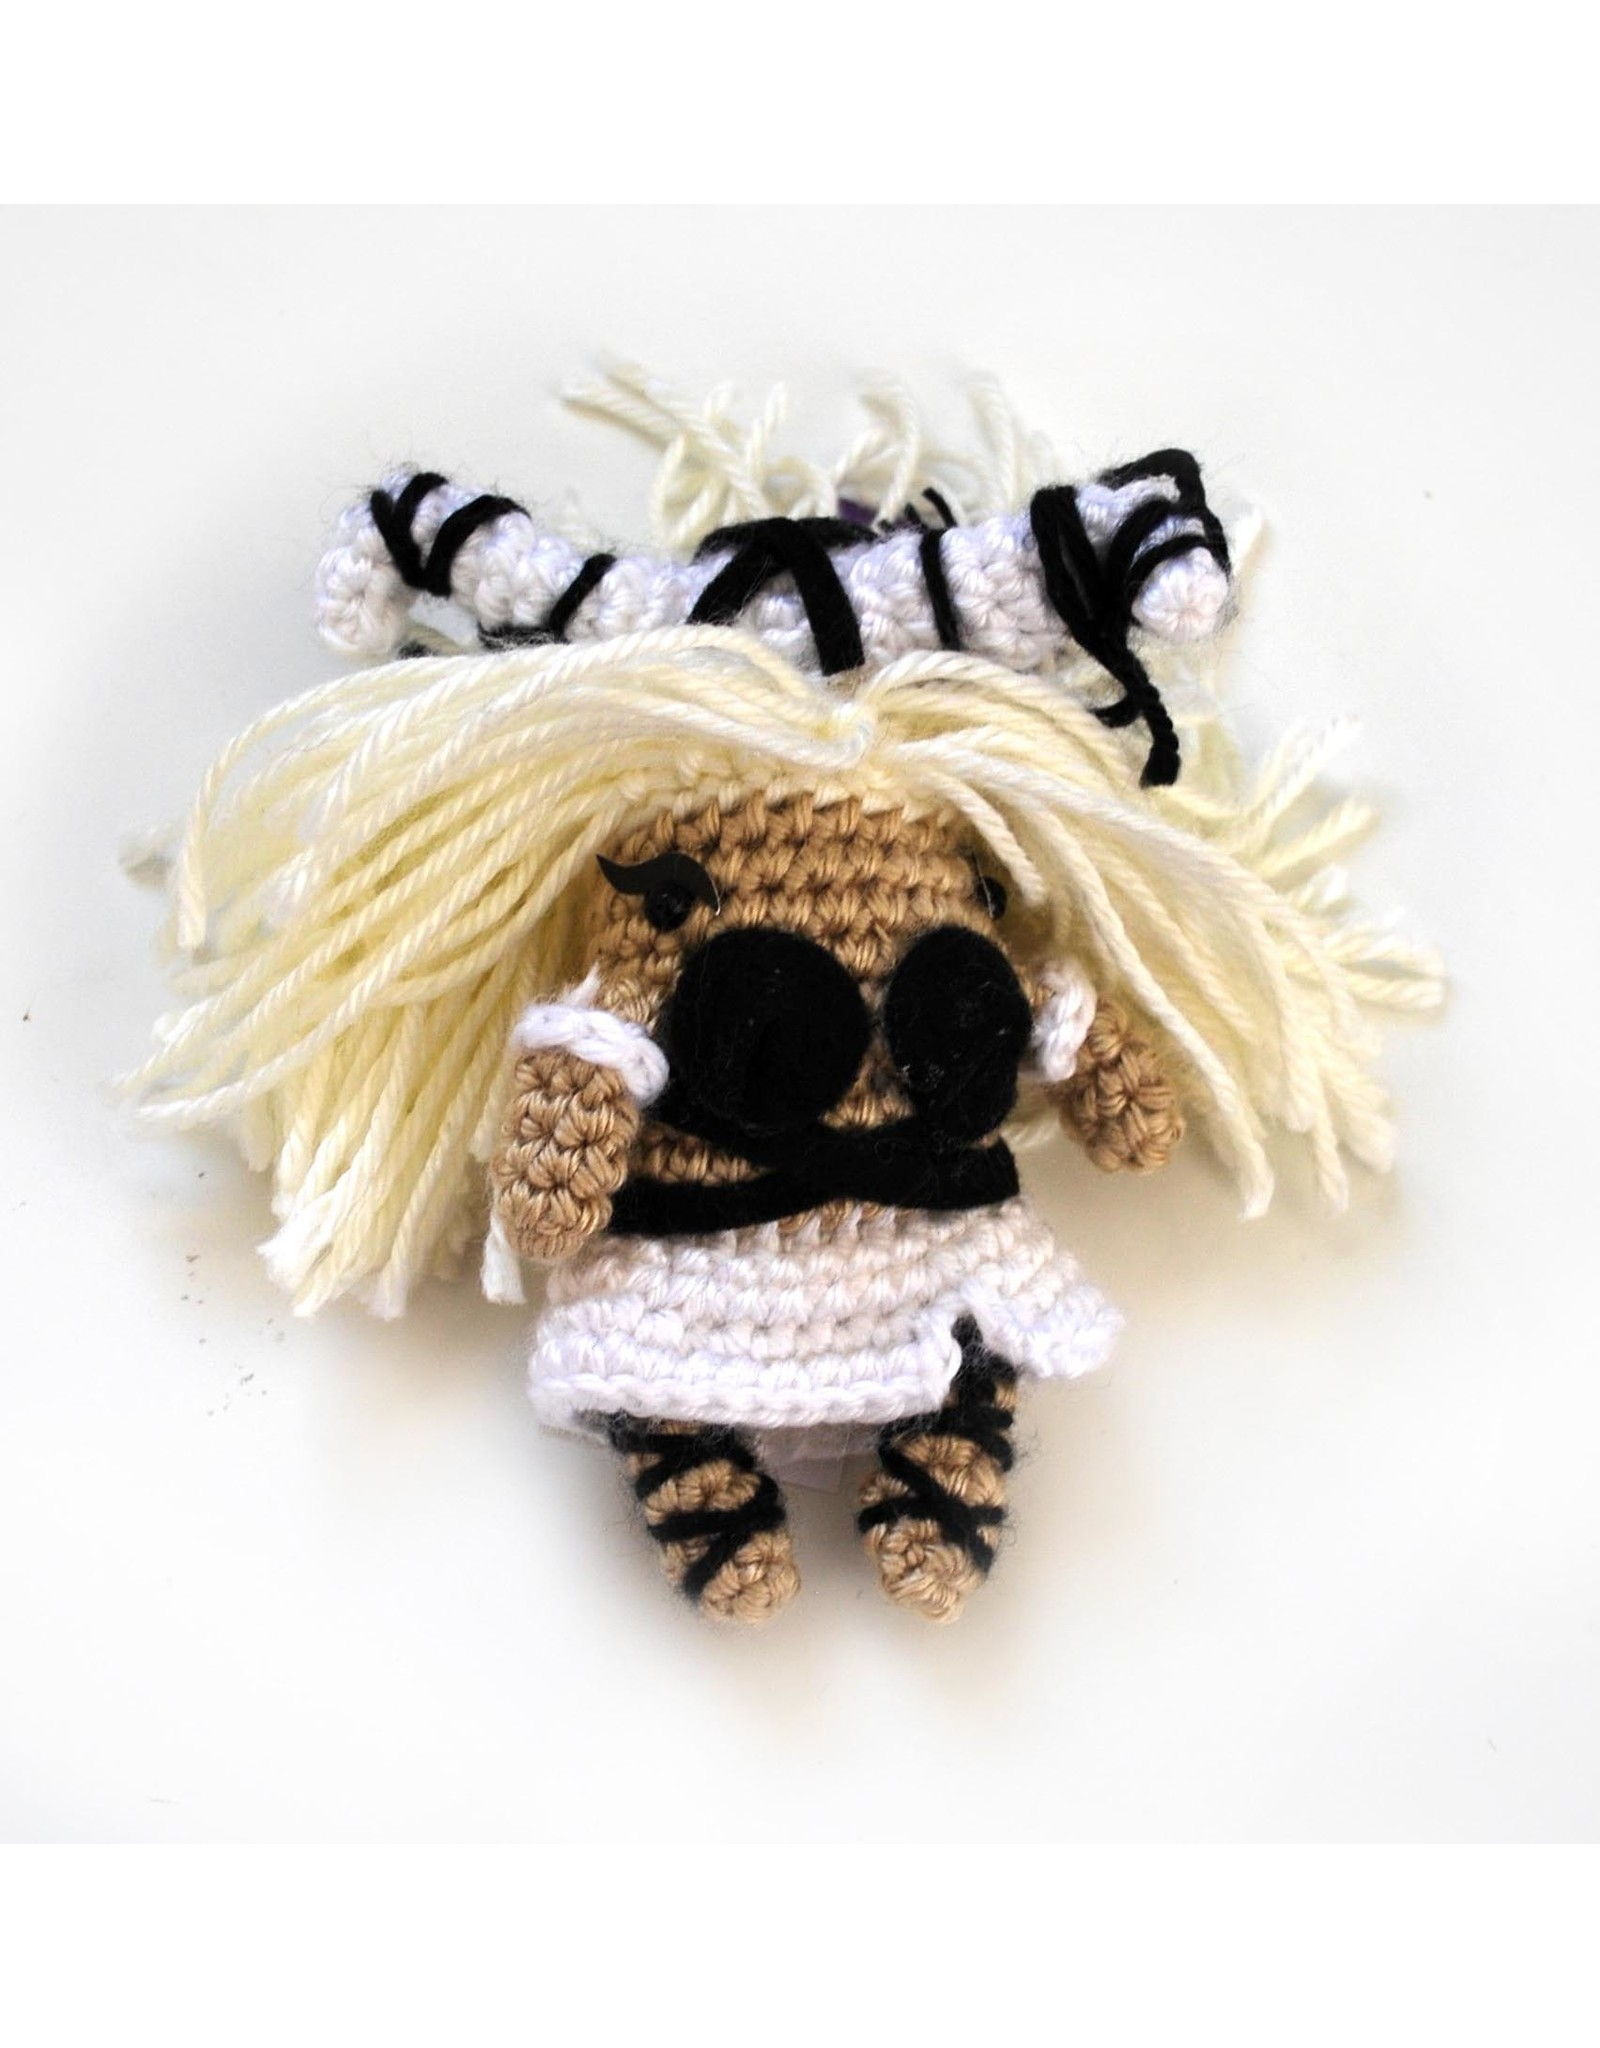 """Naomi Smalls"" by Mats Applesauce Crochet"